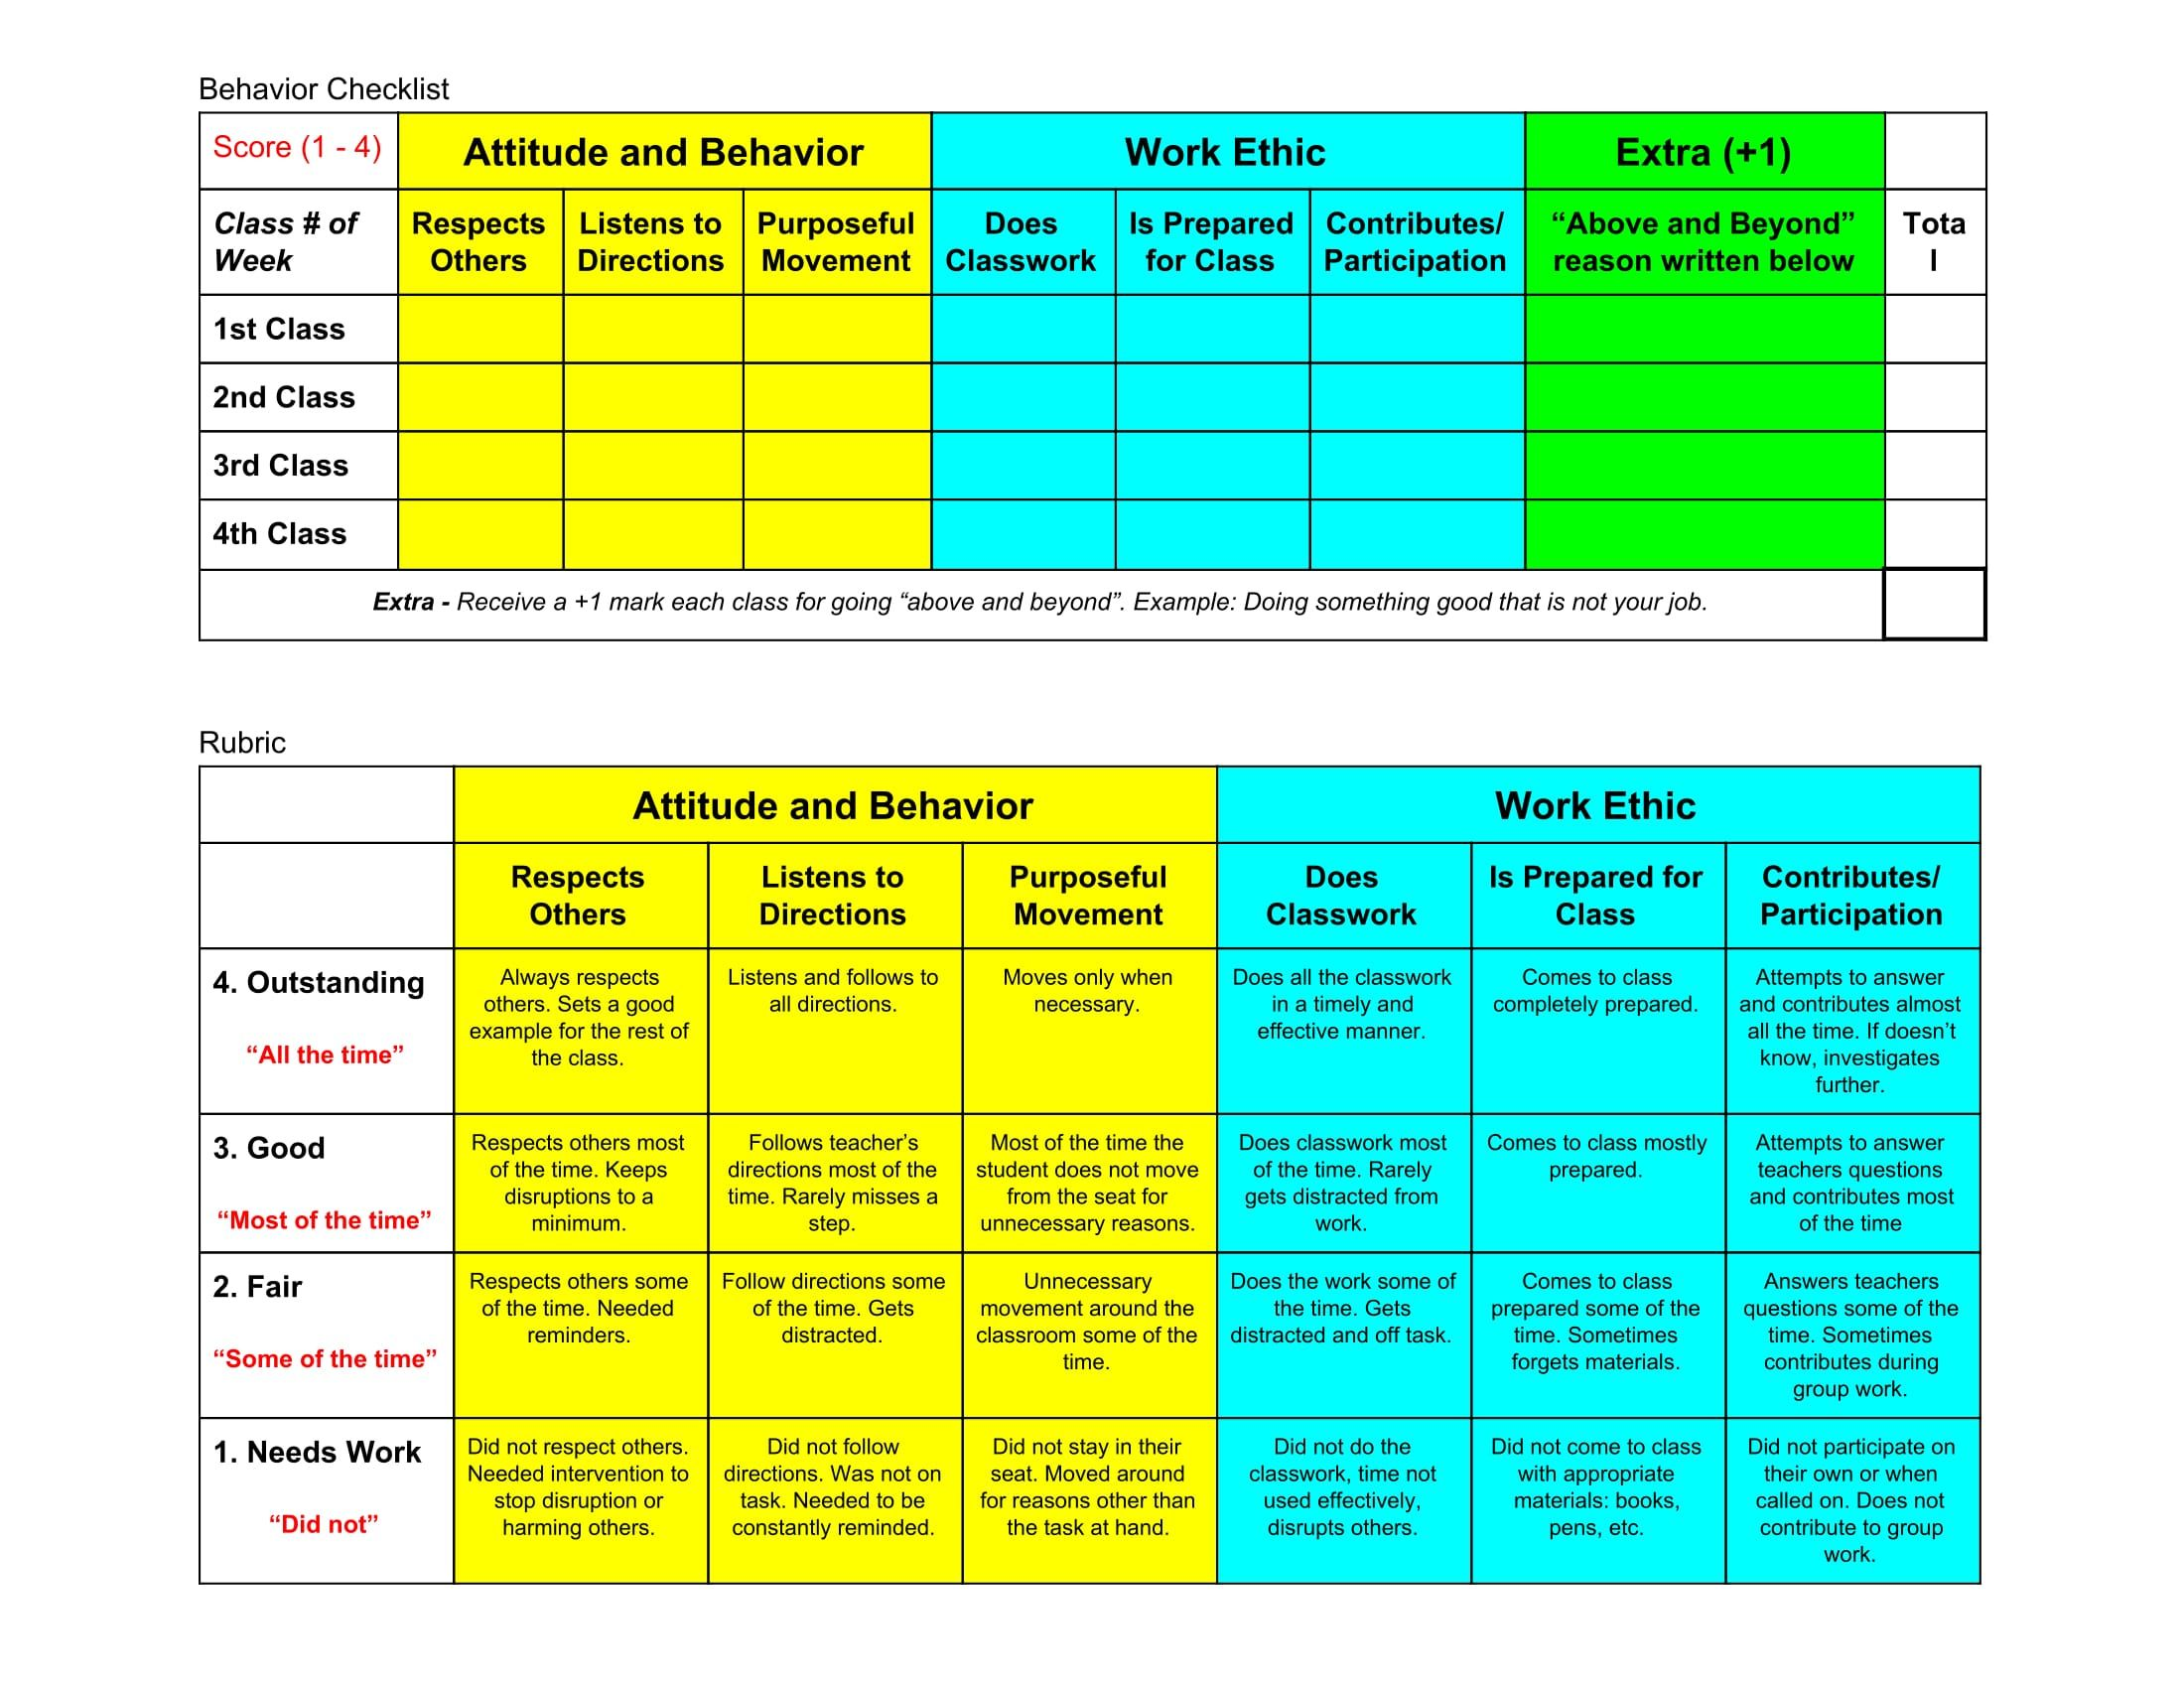 M4U4A2 Weekly Behavior Checklist Rubric for my middles school